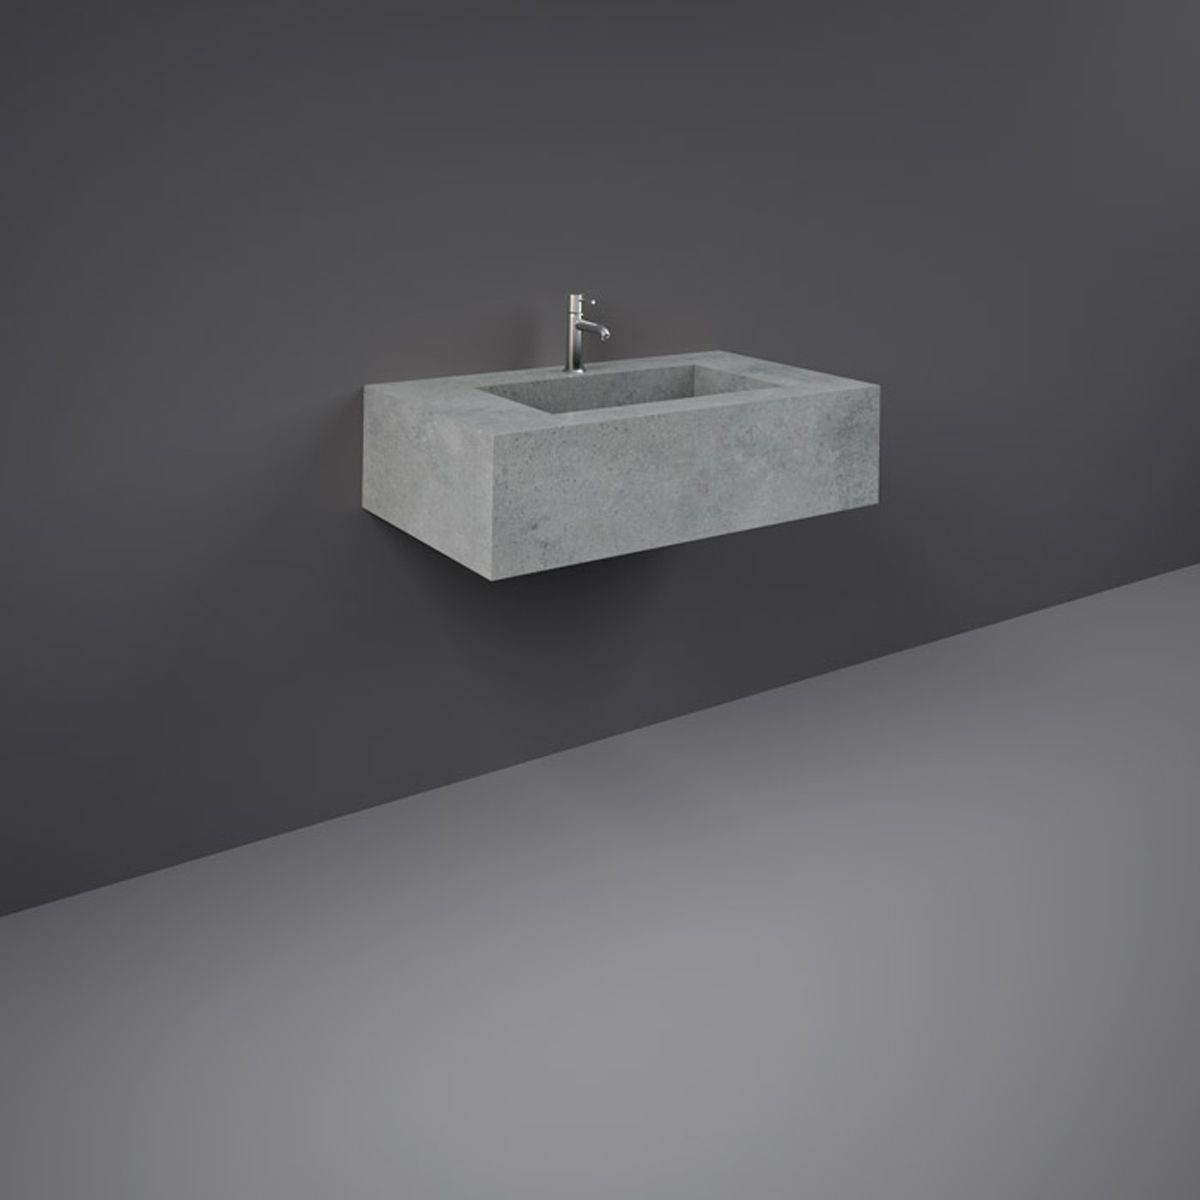 RAK Precious Surface Cool Grey Wall Hung Counter Basin 800mm with Brackets